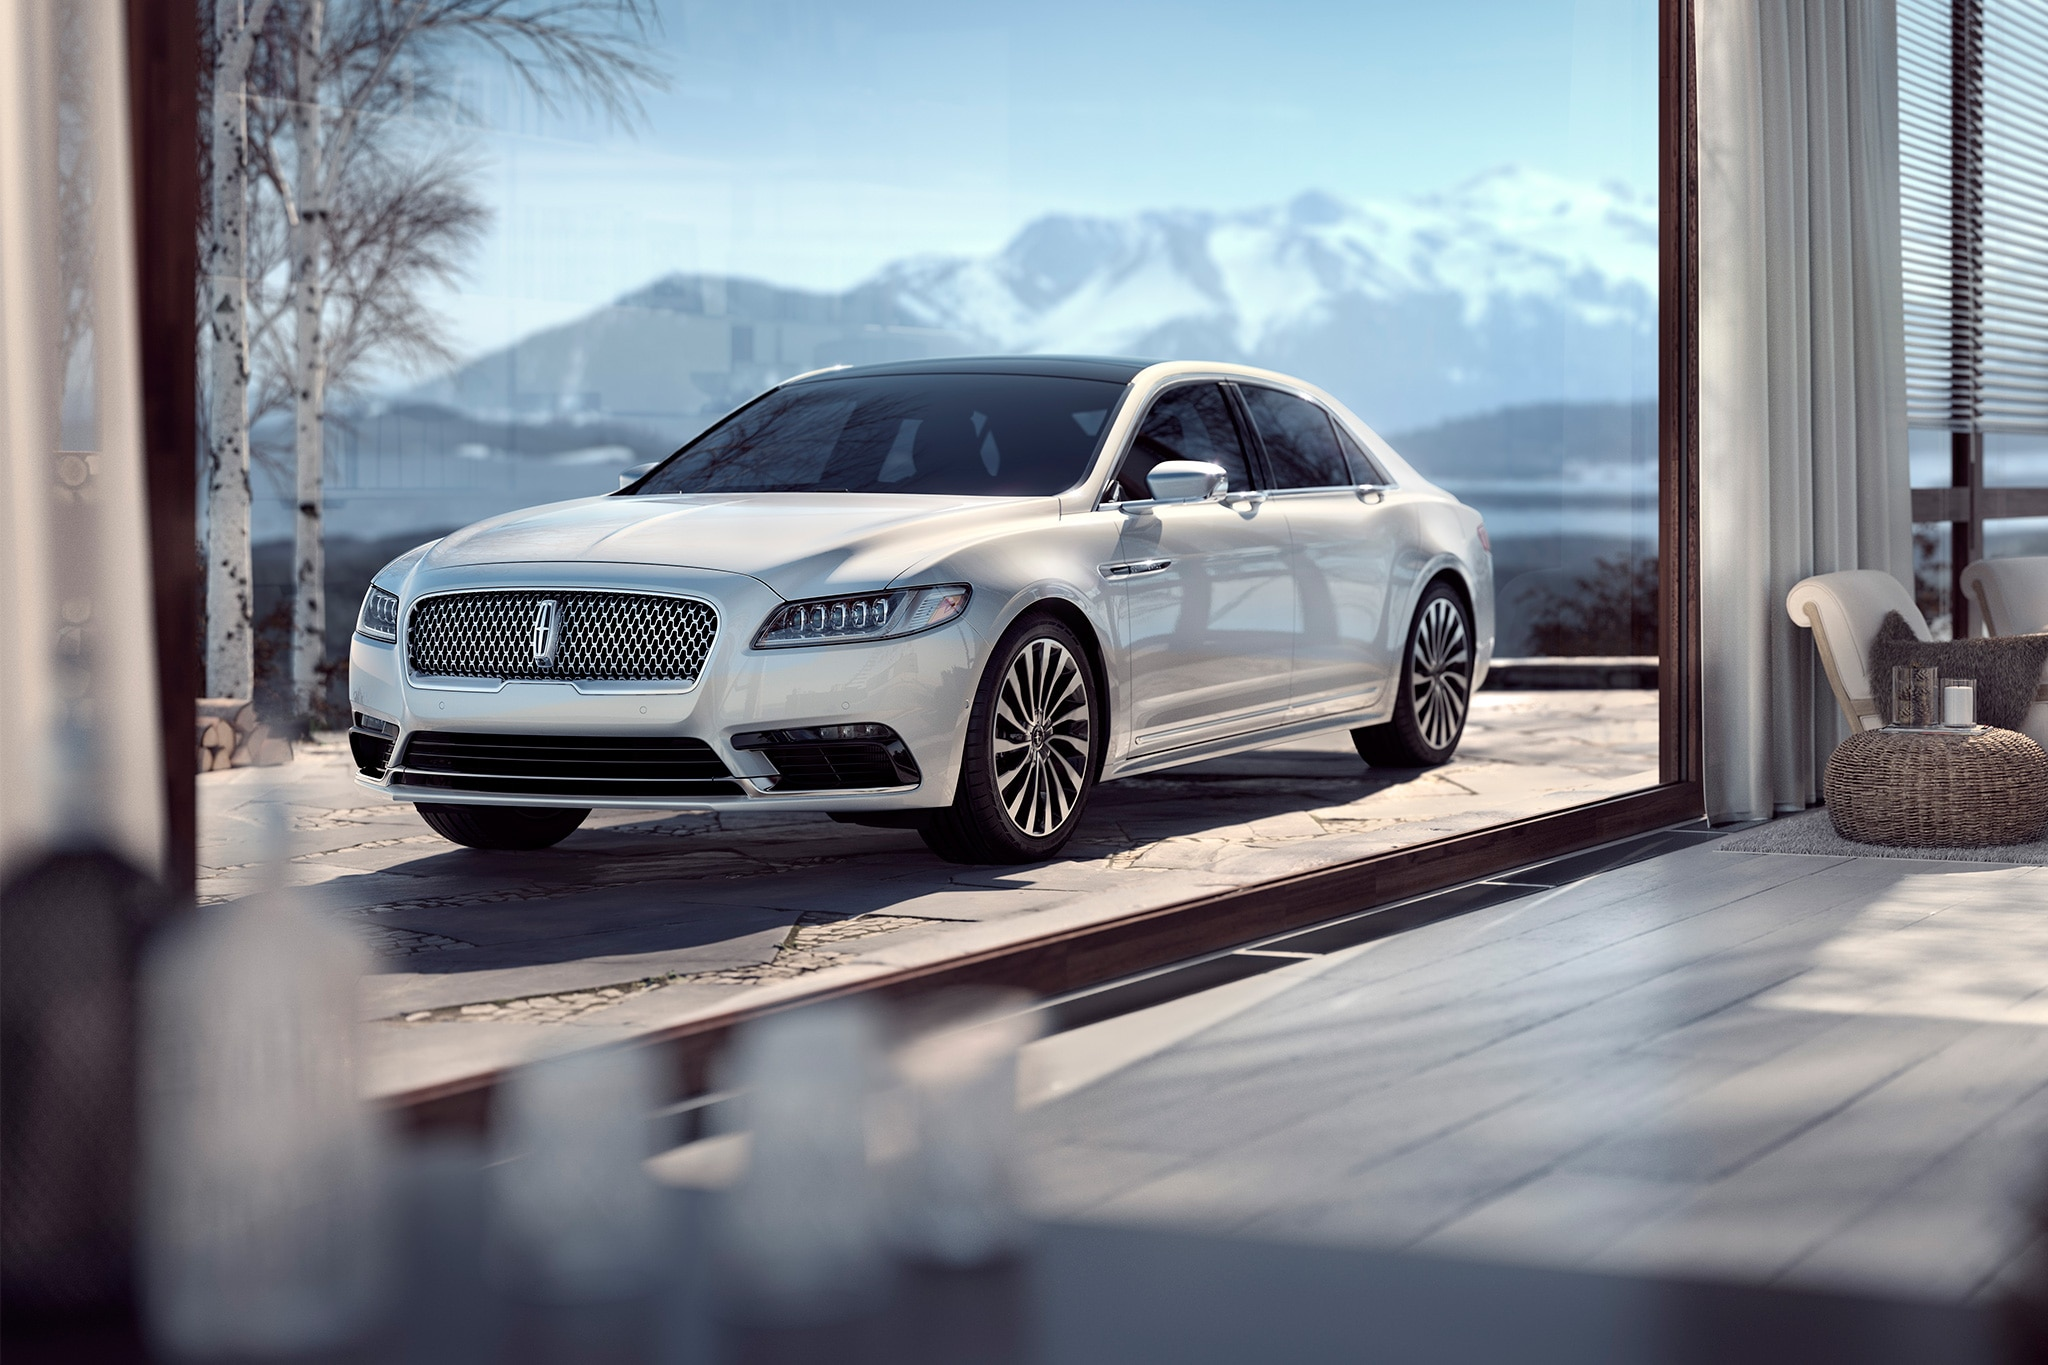 2017 lincoln continental priced from 45 485 to 69 105 automobile magazine. Black Bedroom Furniture Sets. Home Design Ideas